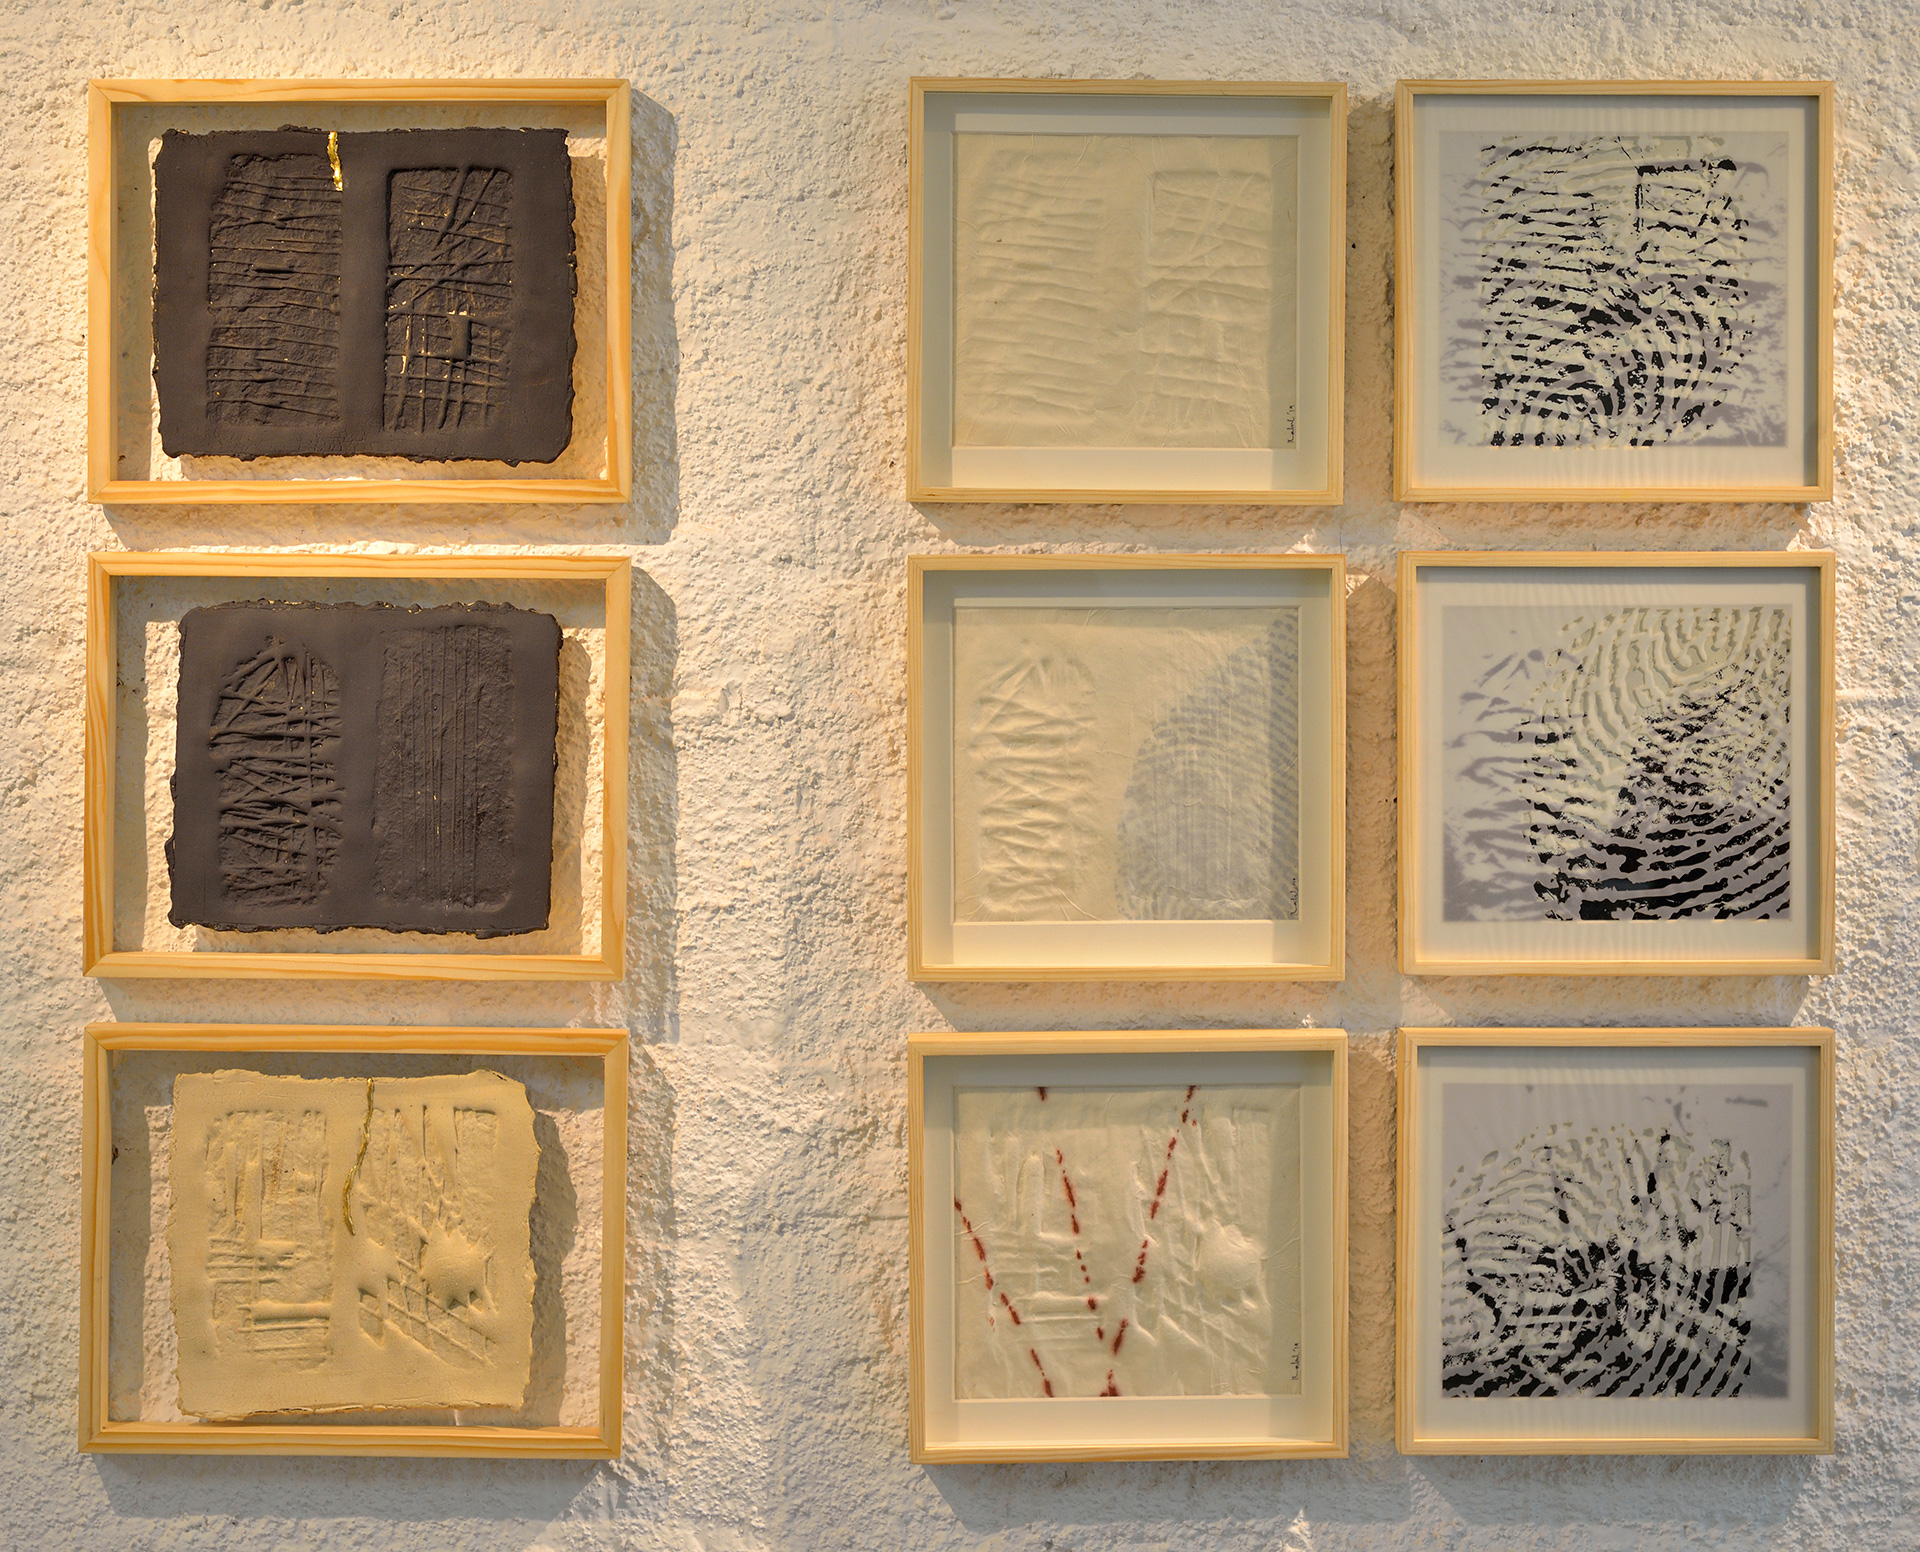 Rahul Kumar, Original Shadow, triptych of stoneware, embossed rice paper and vellum paper print, installed| Skin| Threshold Art Gallery| Georgina Maddox| STIR